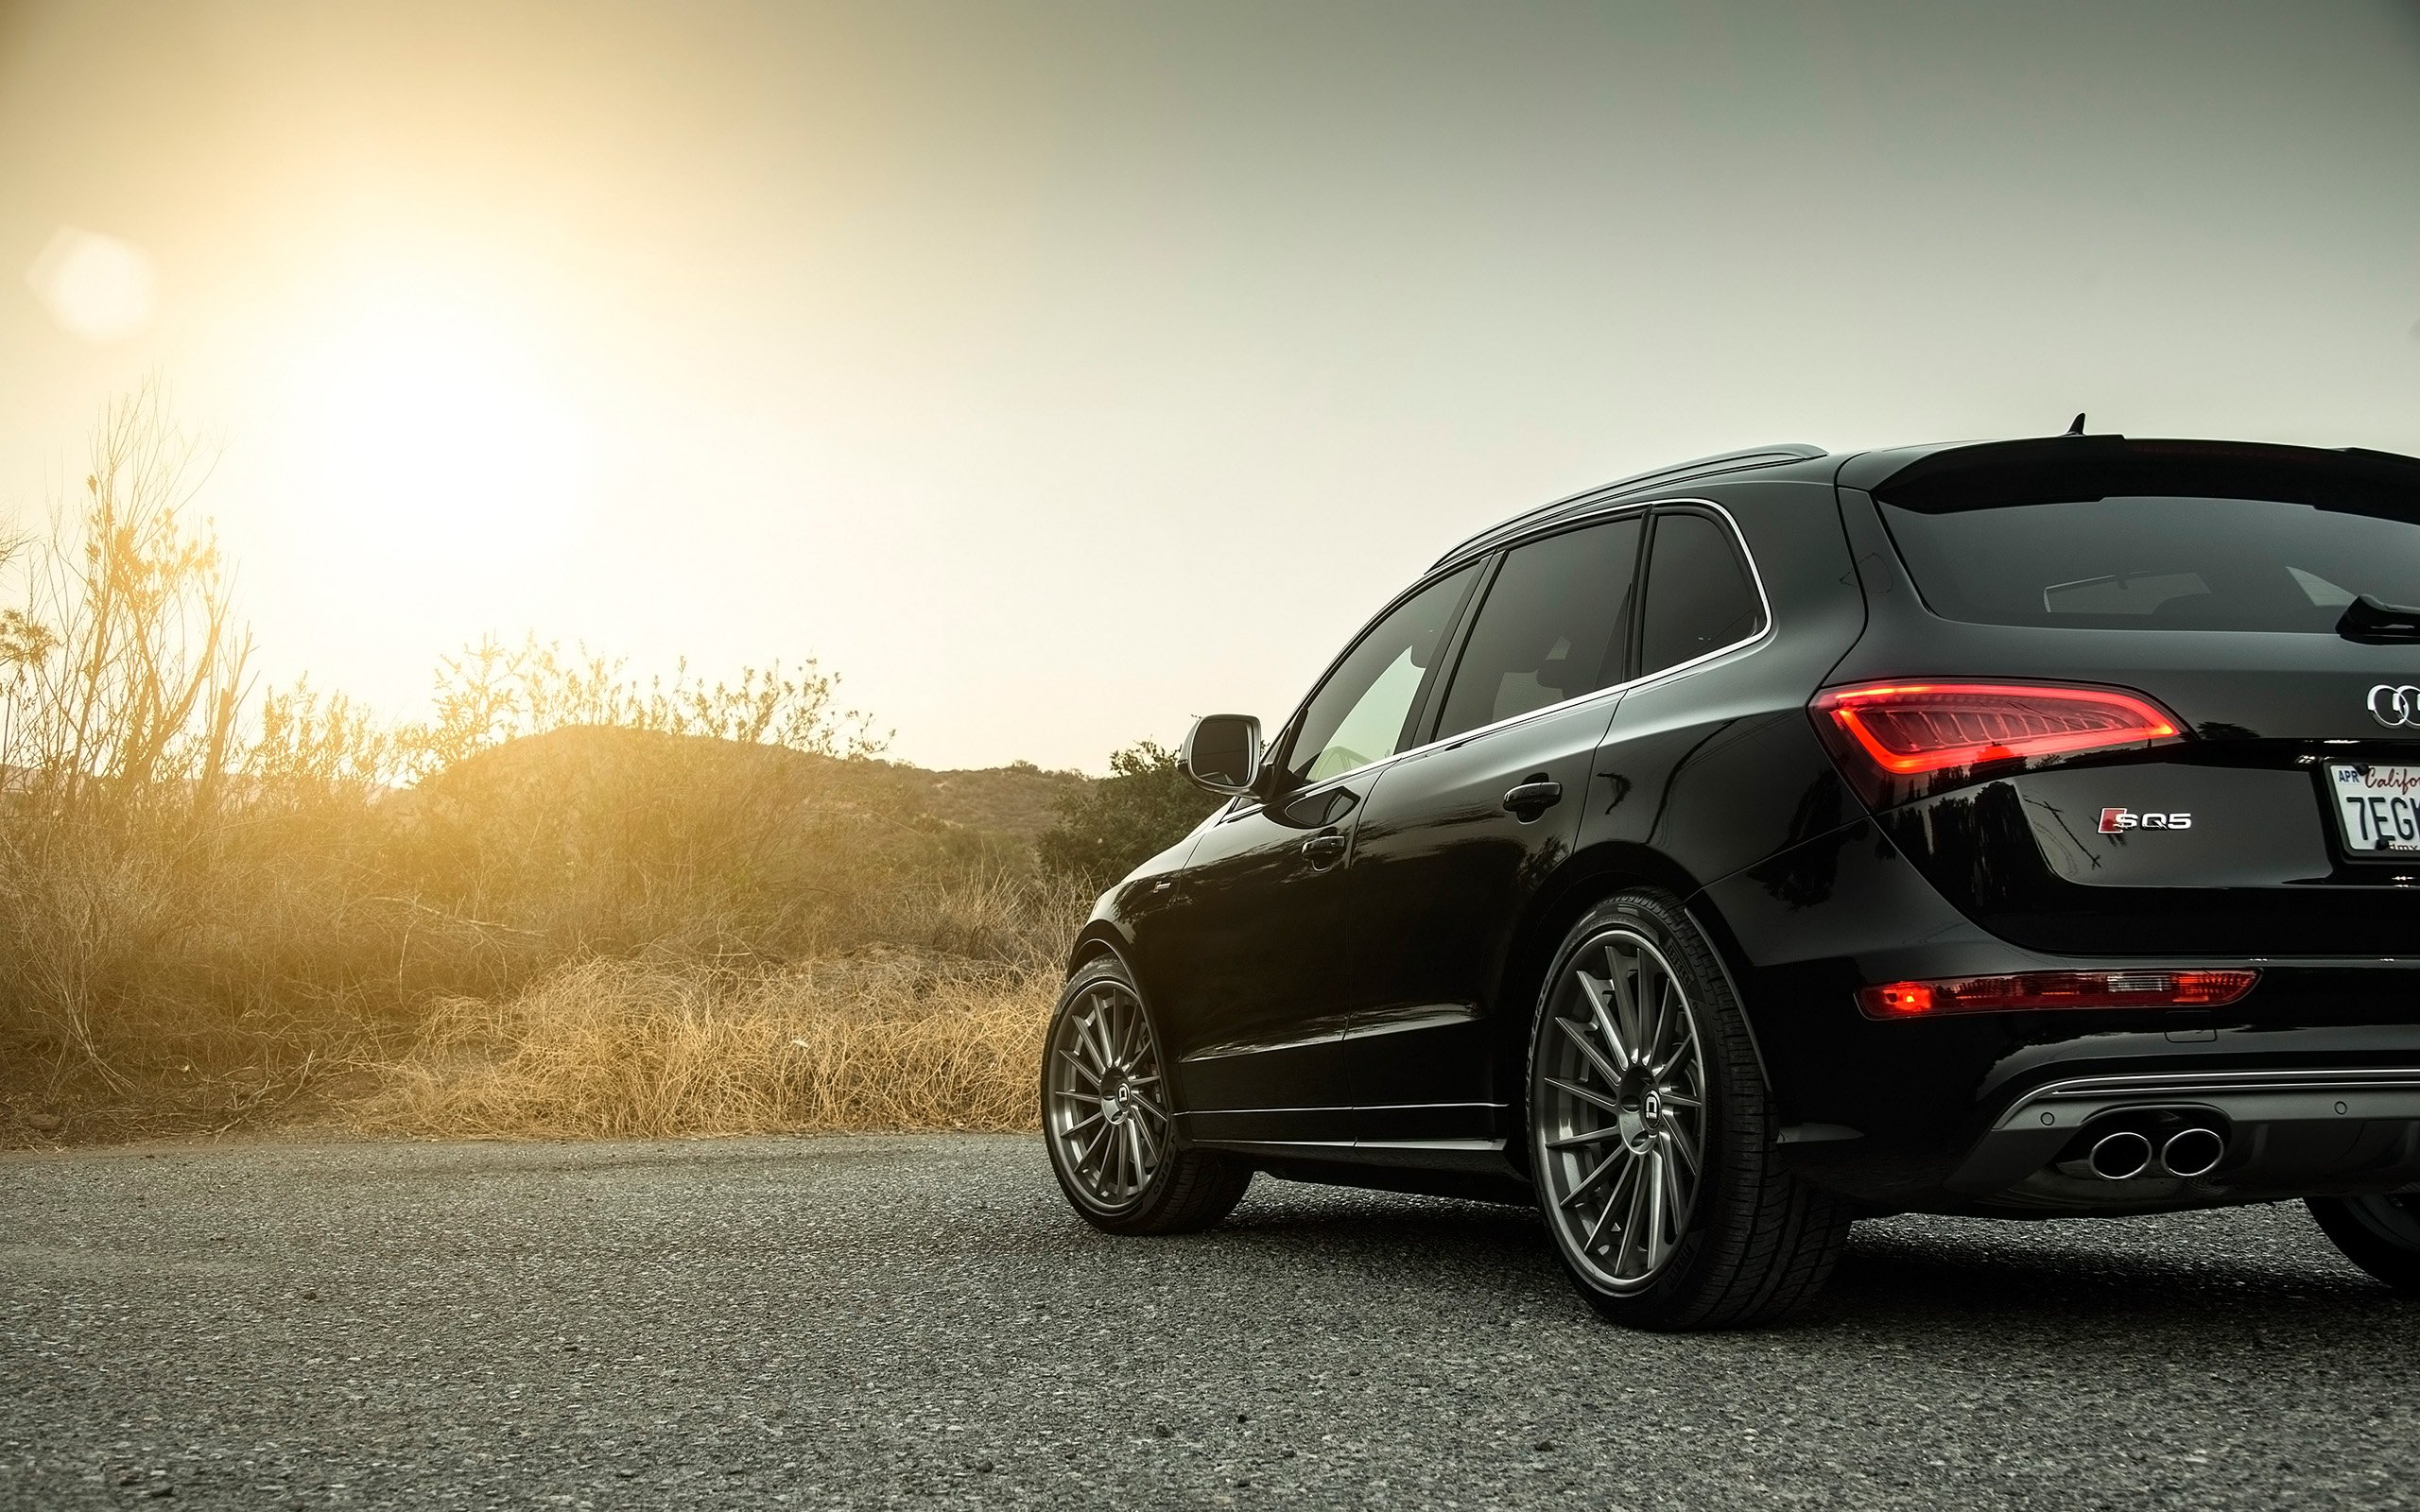 2015 Klassen Audi Sq5 Tuning Suv Wallpaper 2560x1600